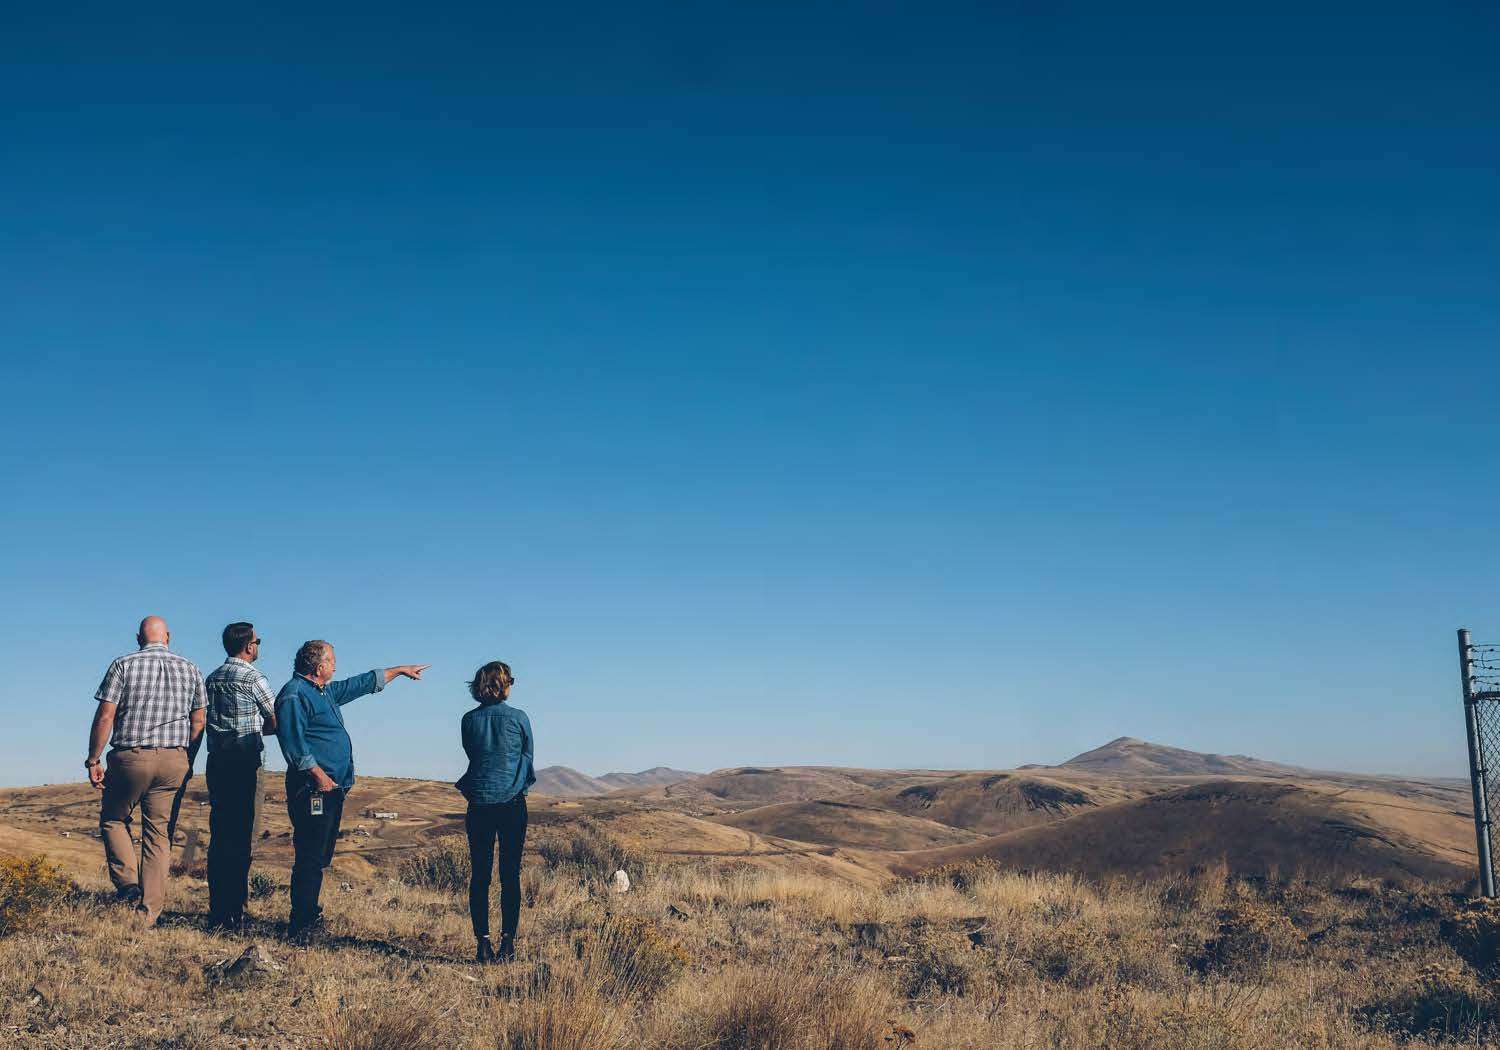 artists with dot staff on open plains pointing away at mountains